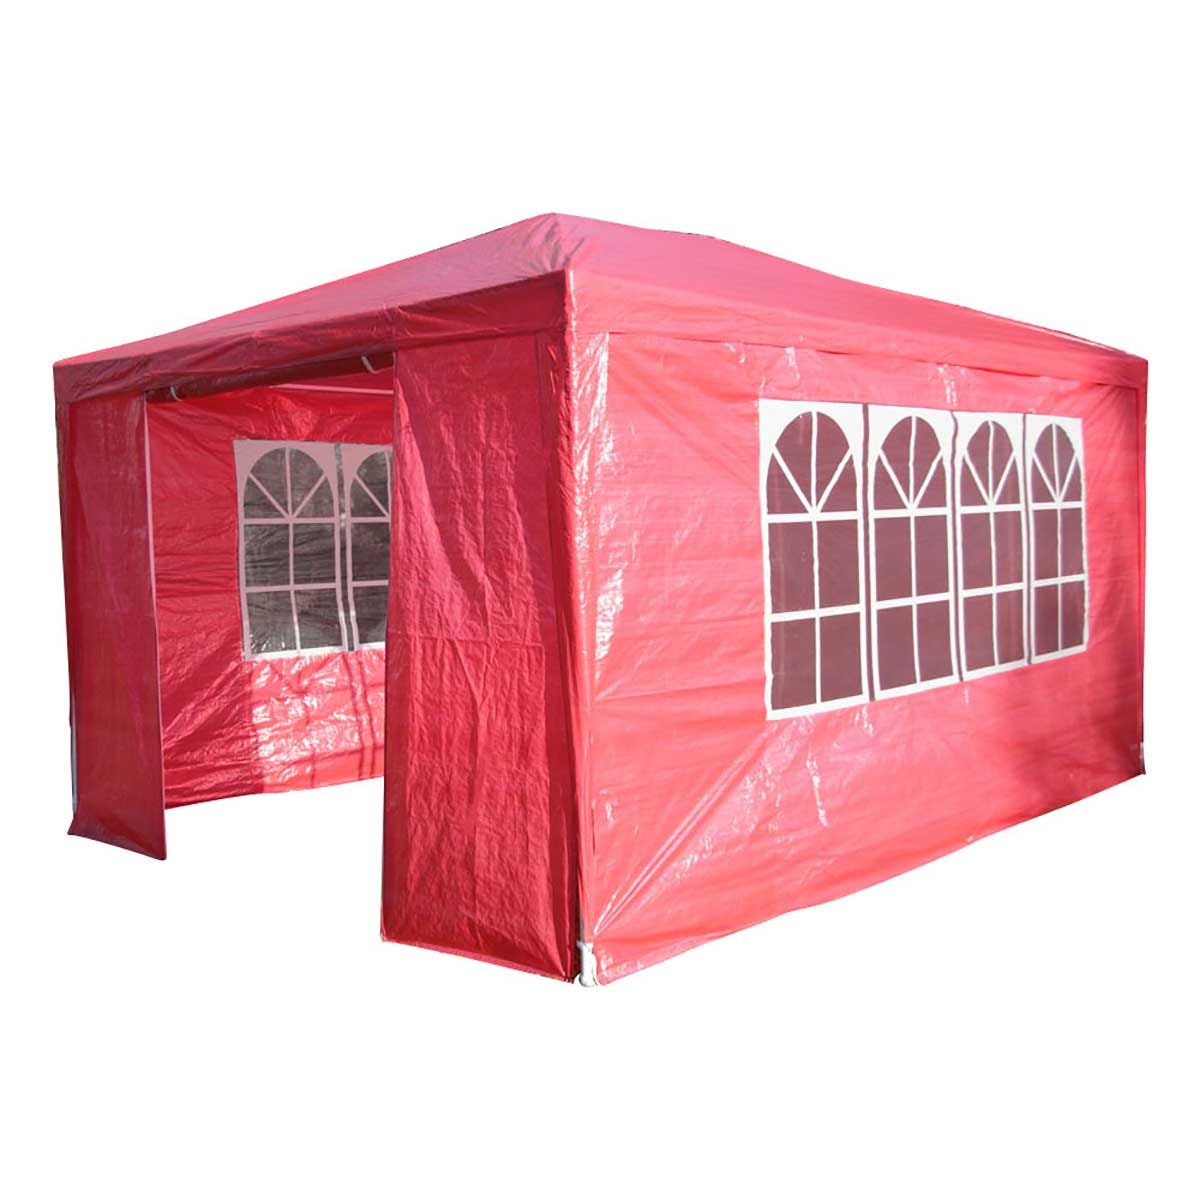 Airwave 4m x 3m Value Party Tent Gazebo - Red